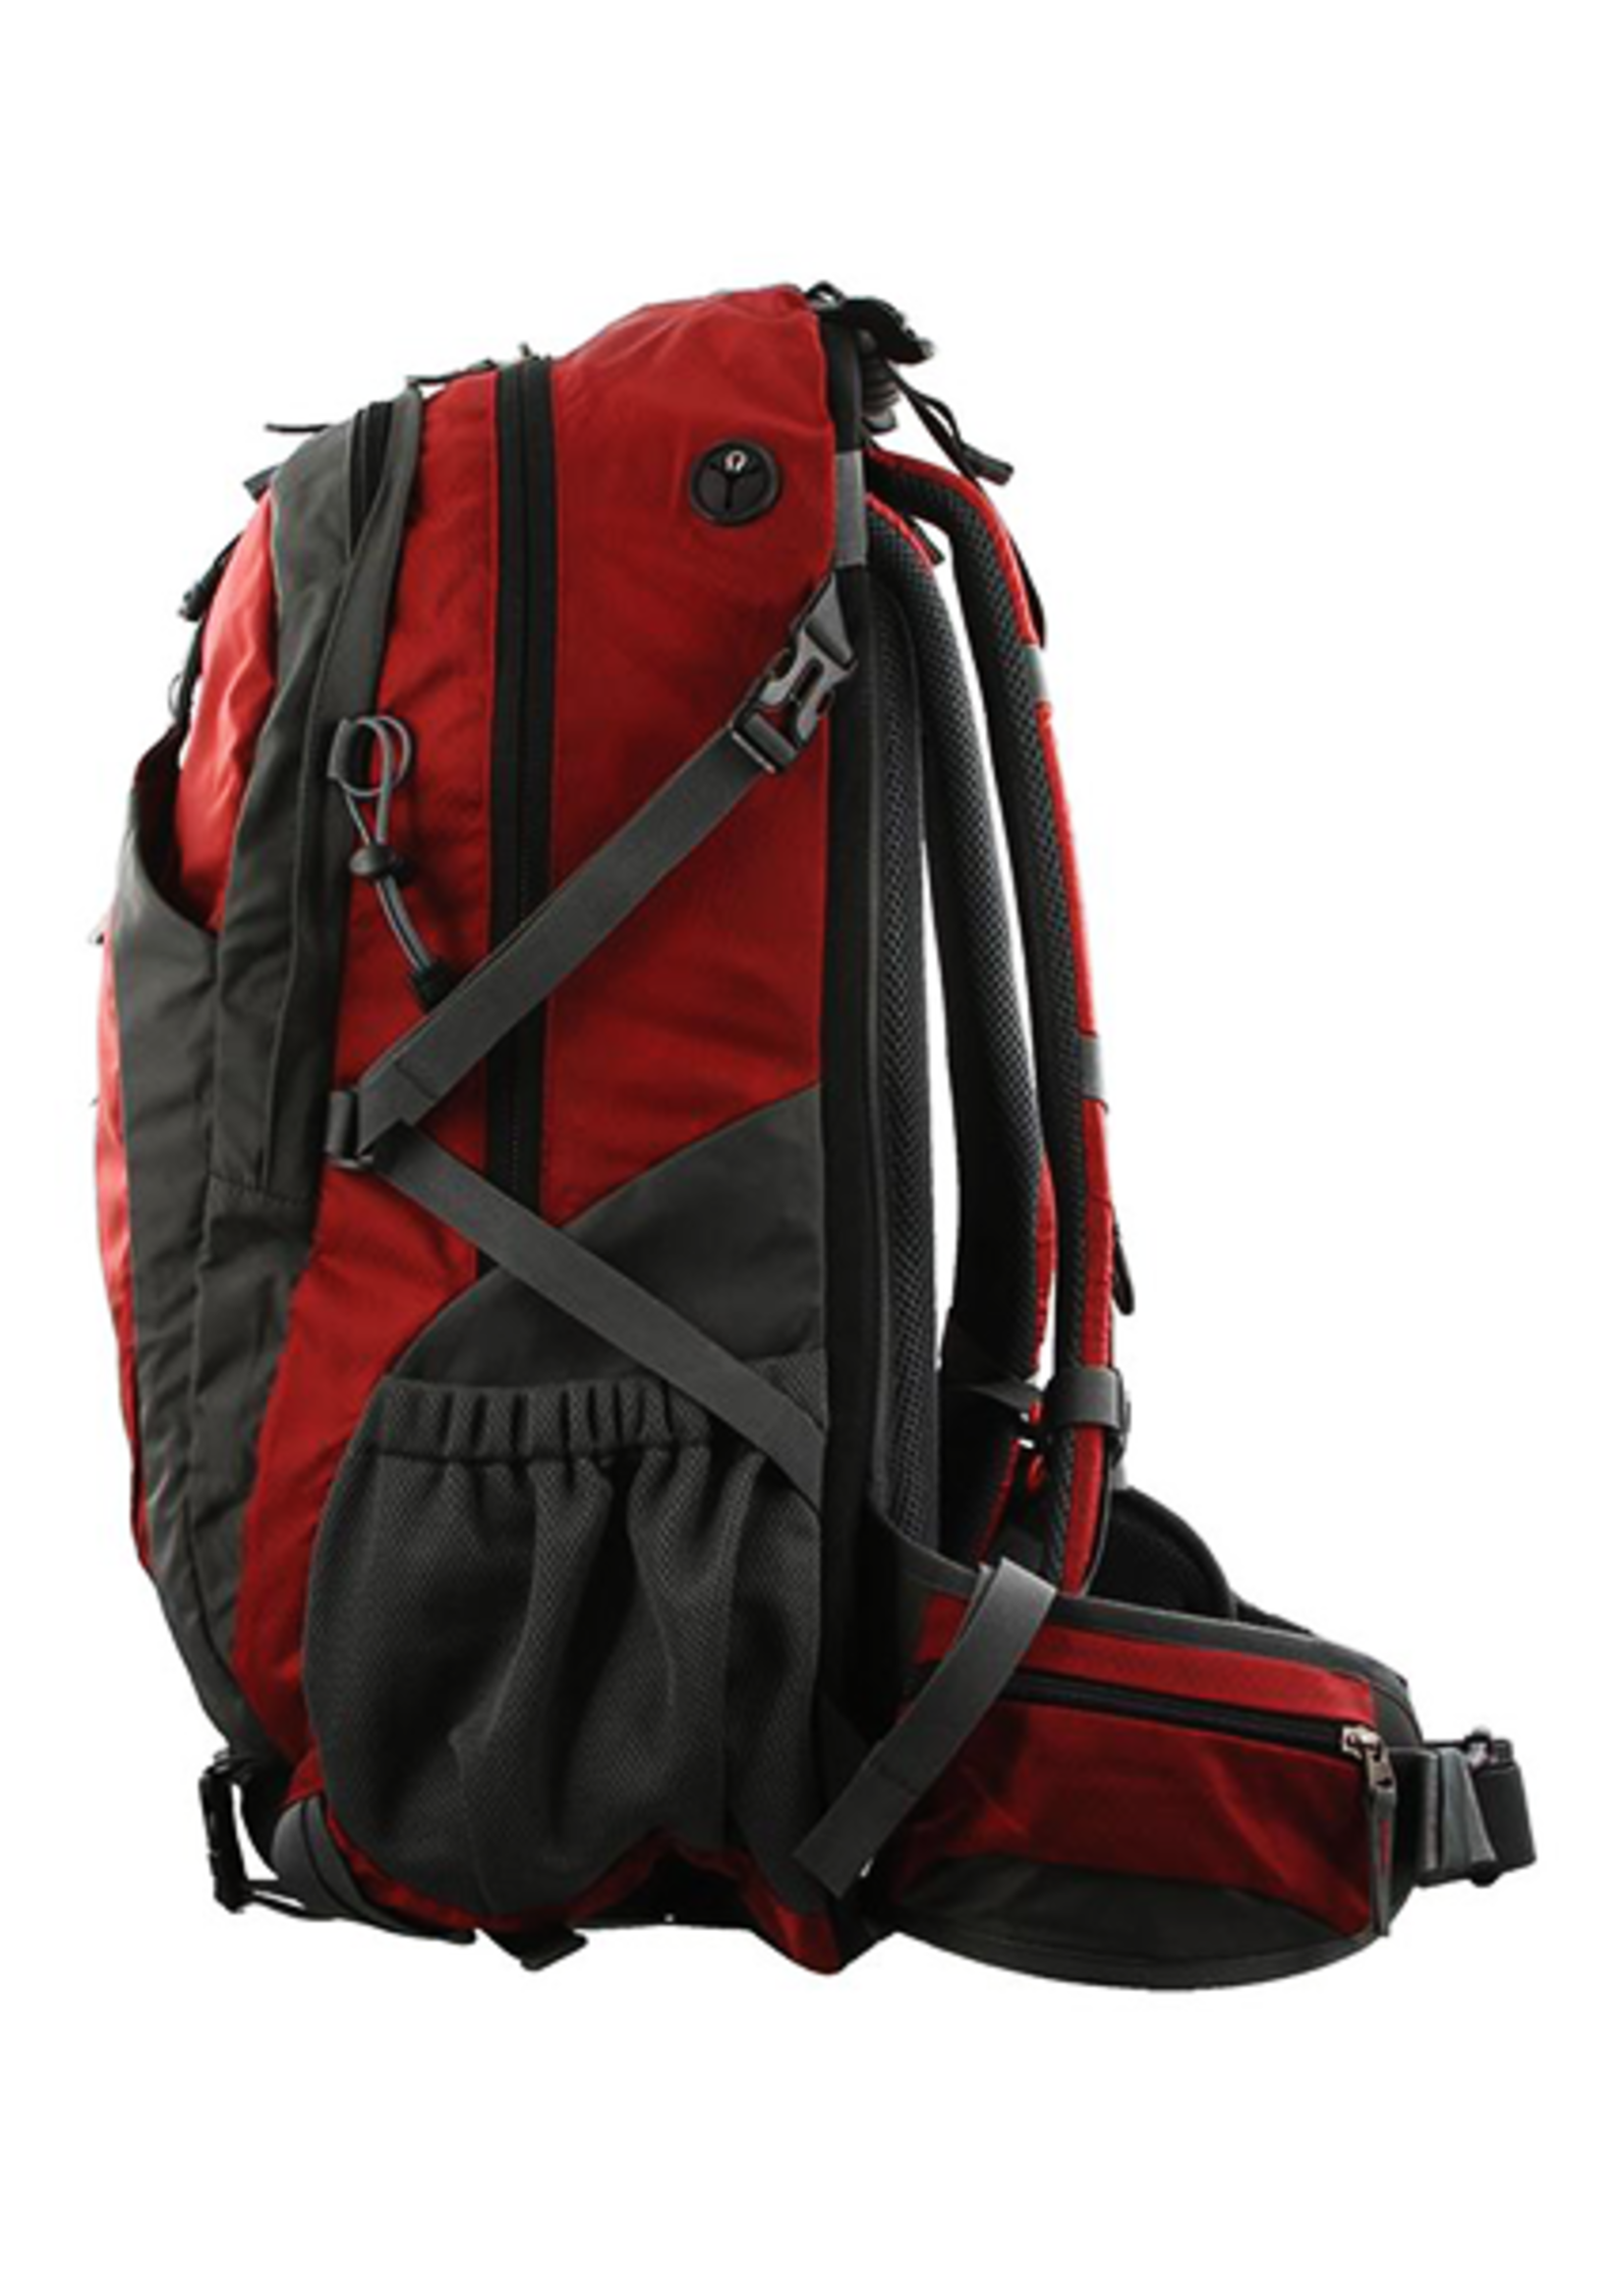 Pierre Cardin Backpack Red PC2130